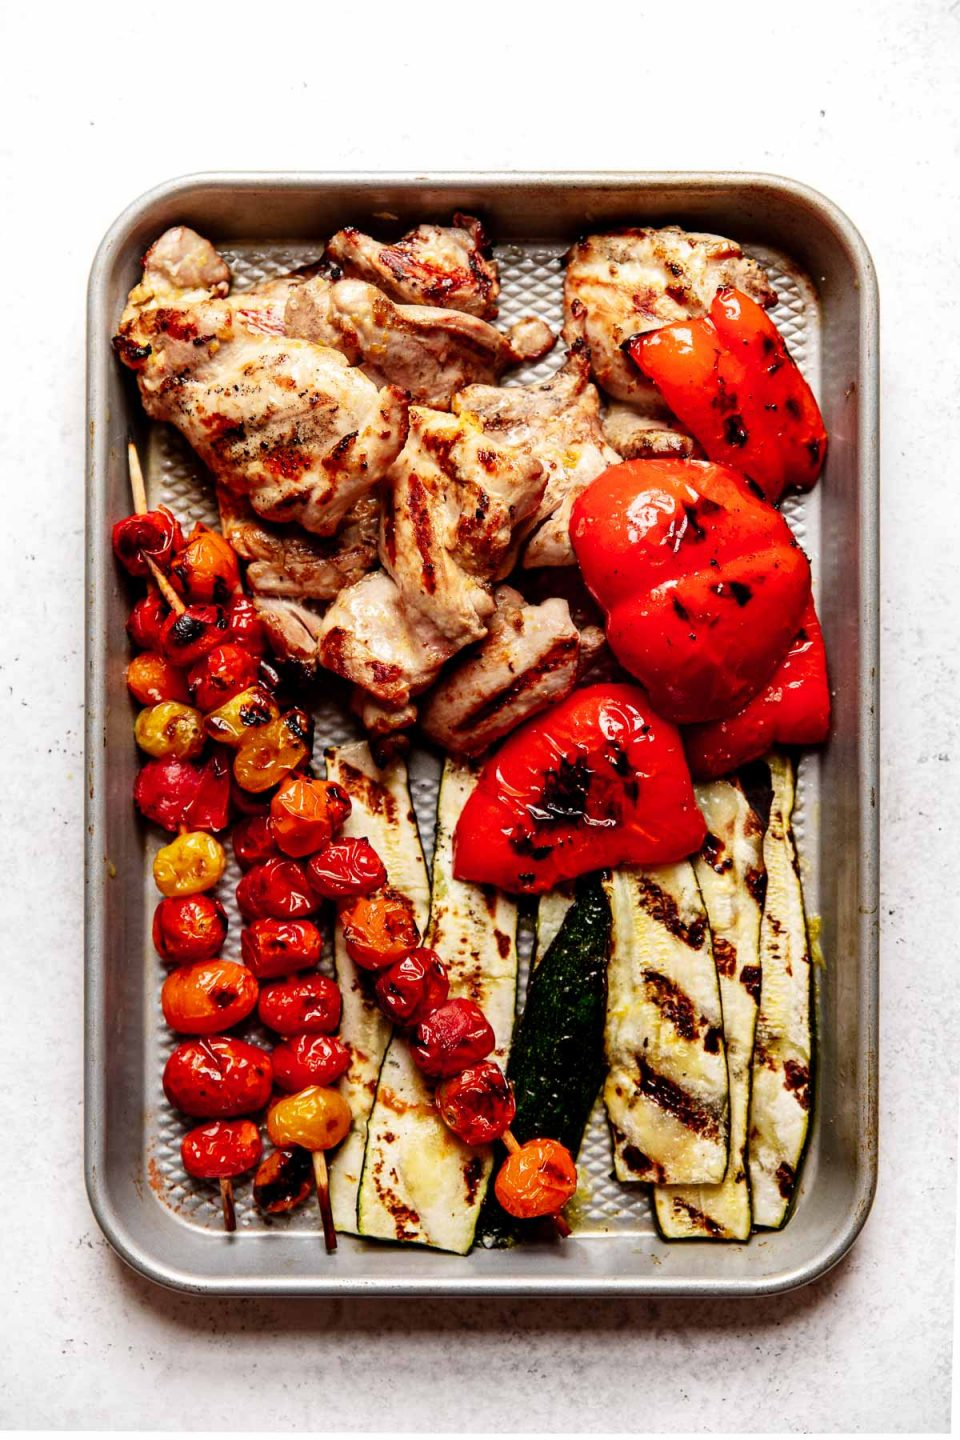 Grilled Chicken & Veggies (Zucchini, bell pepper, tomatoes) on a quarter baking sheet atop a white surface.